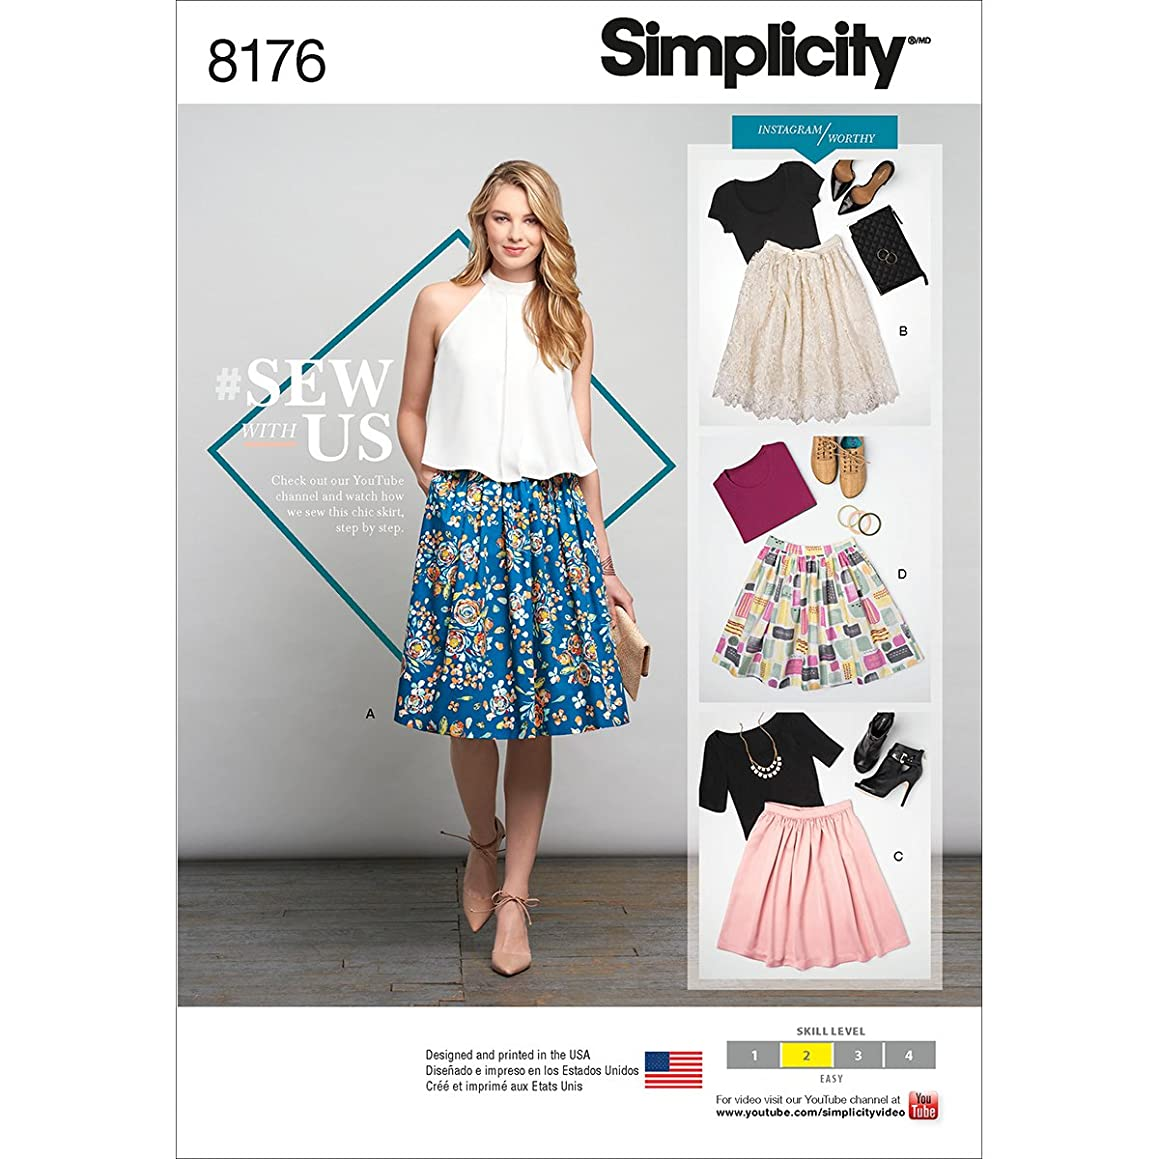 Simplicity 8176 Dirndl Skirt Sewing Pattern for Women, Sizes R5 (14-22)